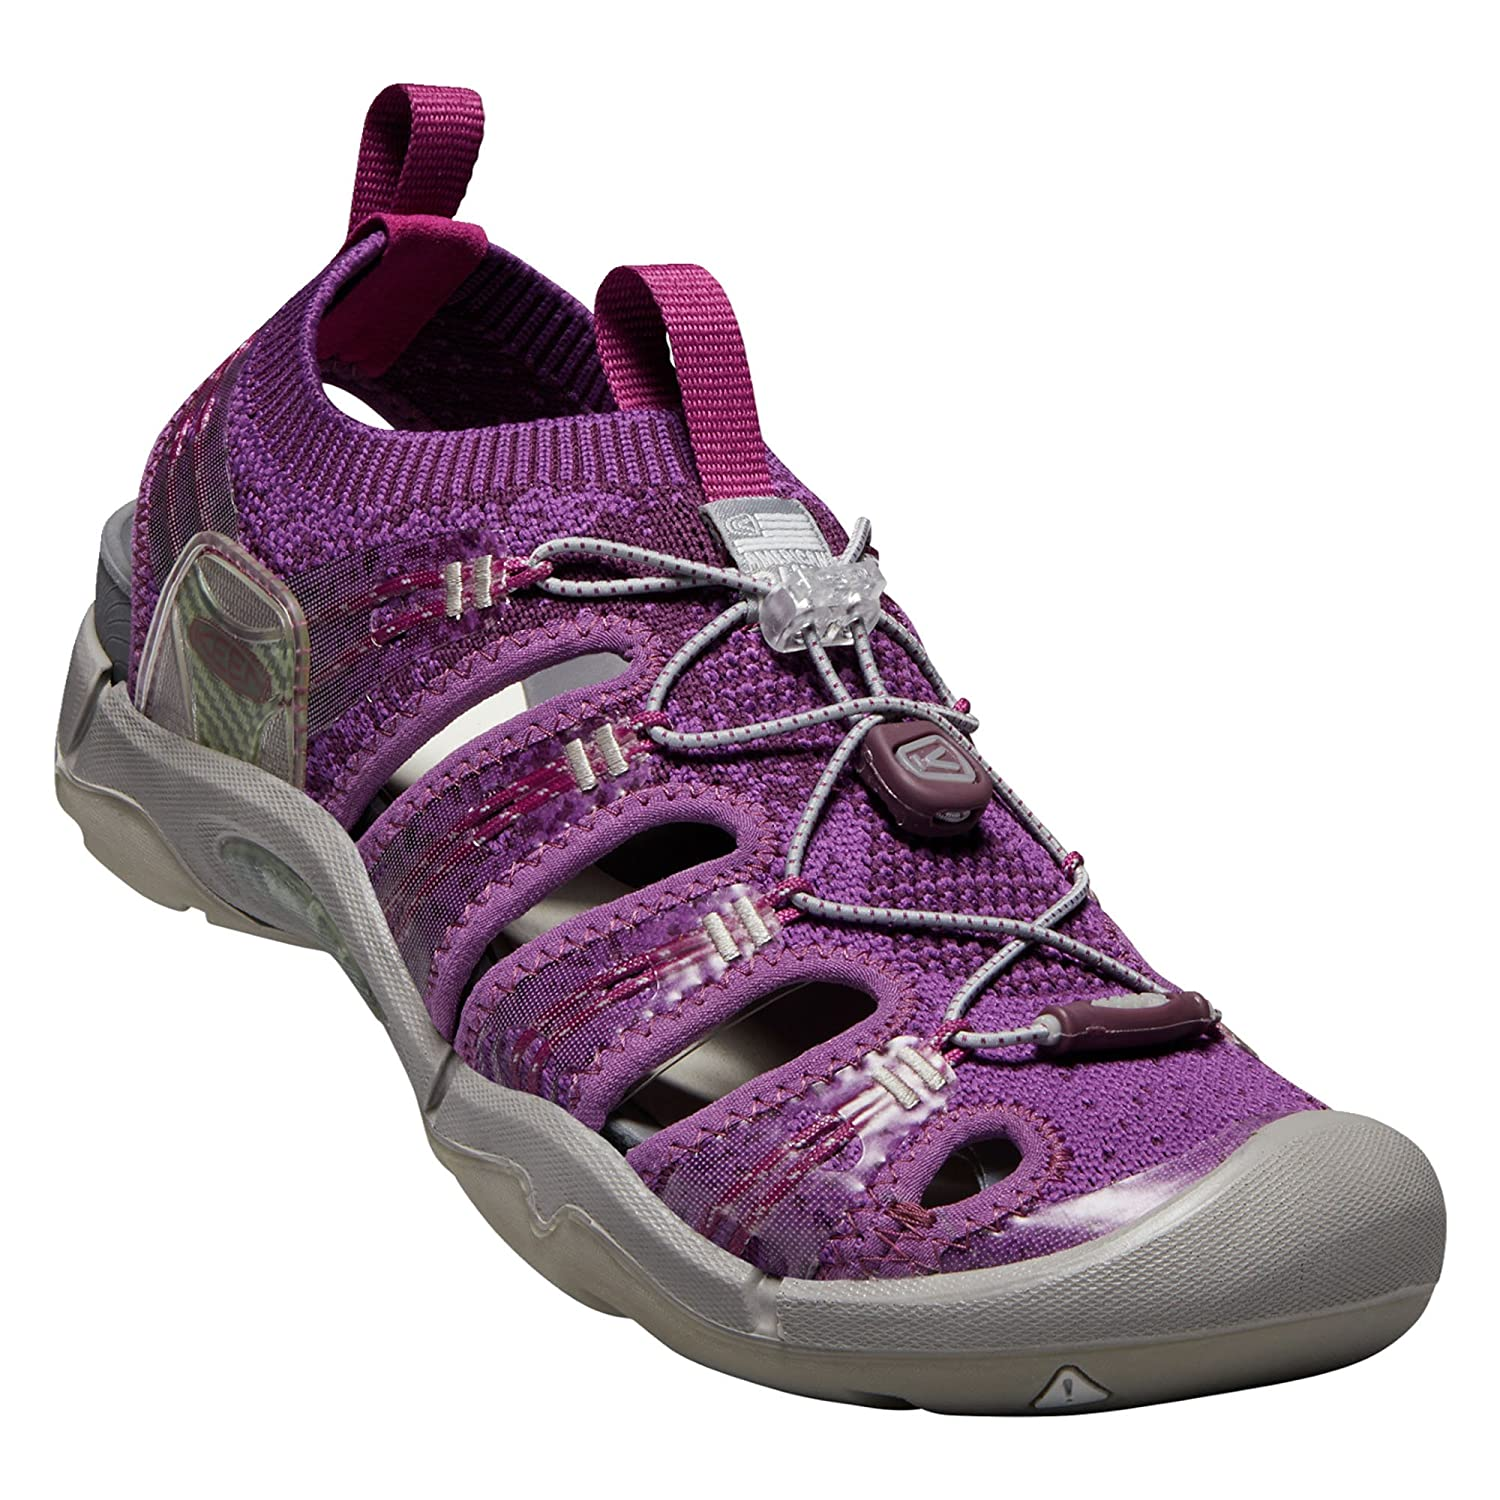 KEEN(キーン)EVOFIT ONE 1019153 レディース B071CX9P6K 9 M US|Grape Kiss/Grape Wine Grape Kiss/Grape Wine 9 M US